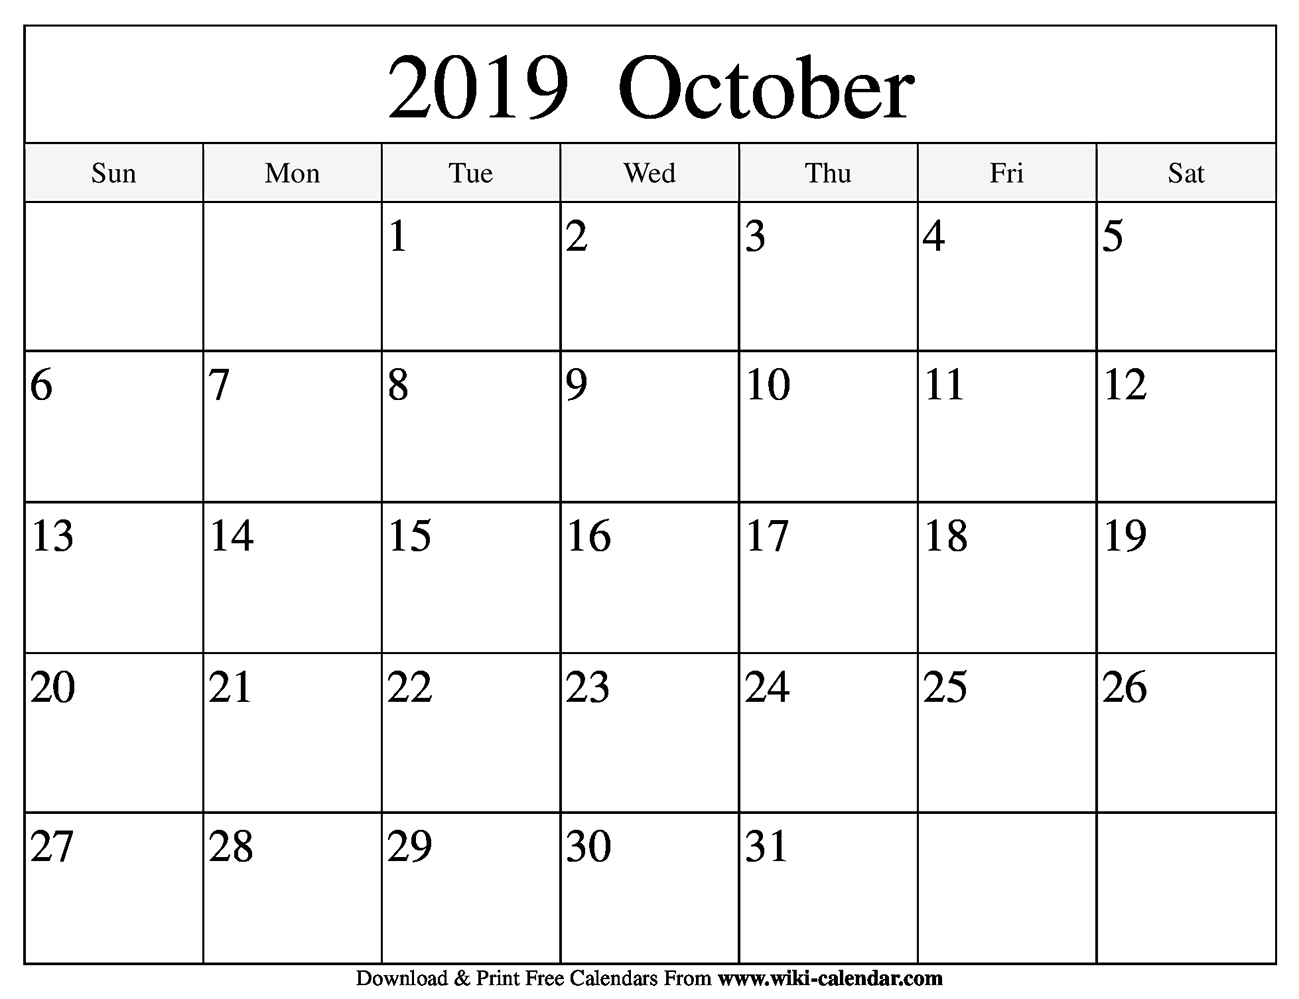 photo about October Calendar Printable named Free of charge Printable Oct 2019 Calendar